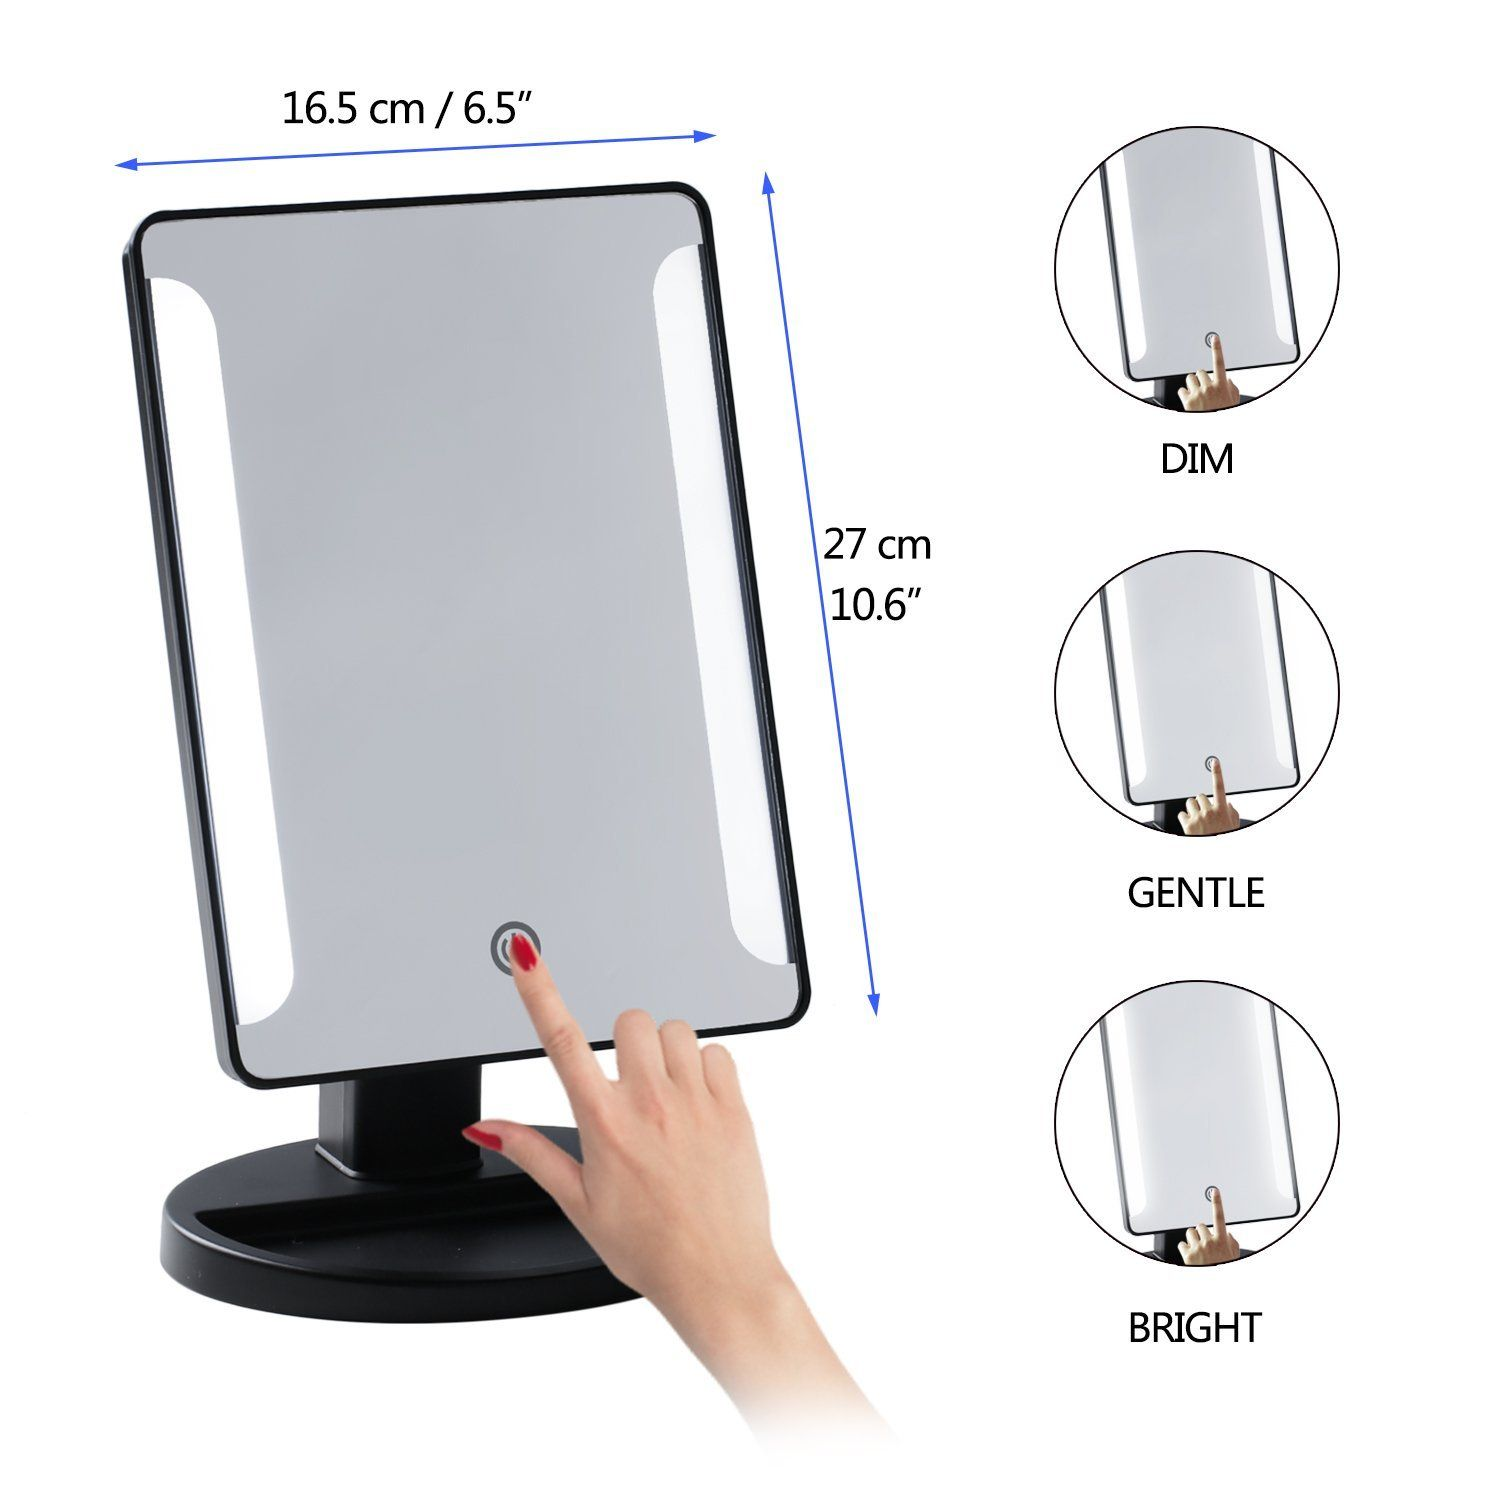 Portable Vanity Mirror With Lights Stunning 36 Led Desk Makeup Mirror 10X Magnifying Lighted Makeup Mirror Design Inspiration